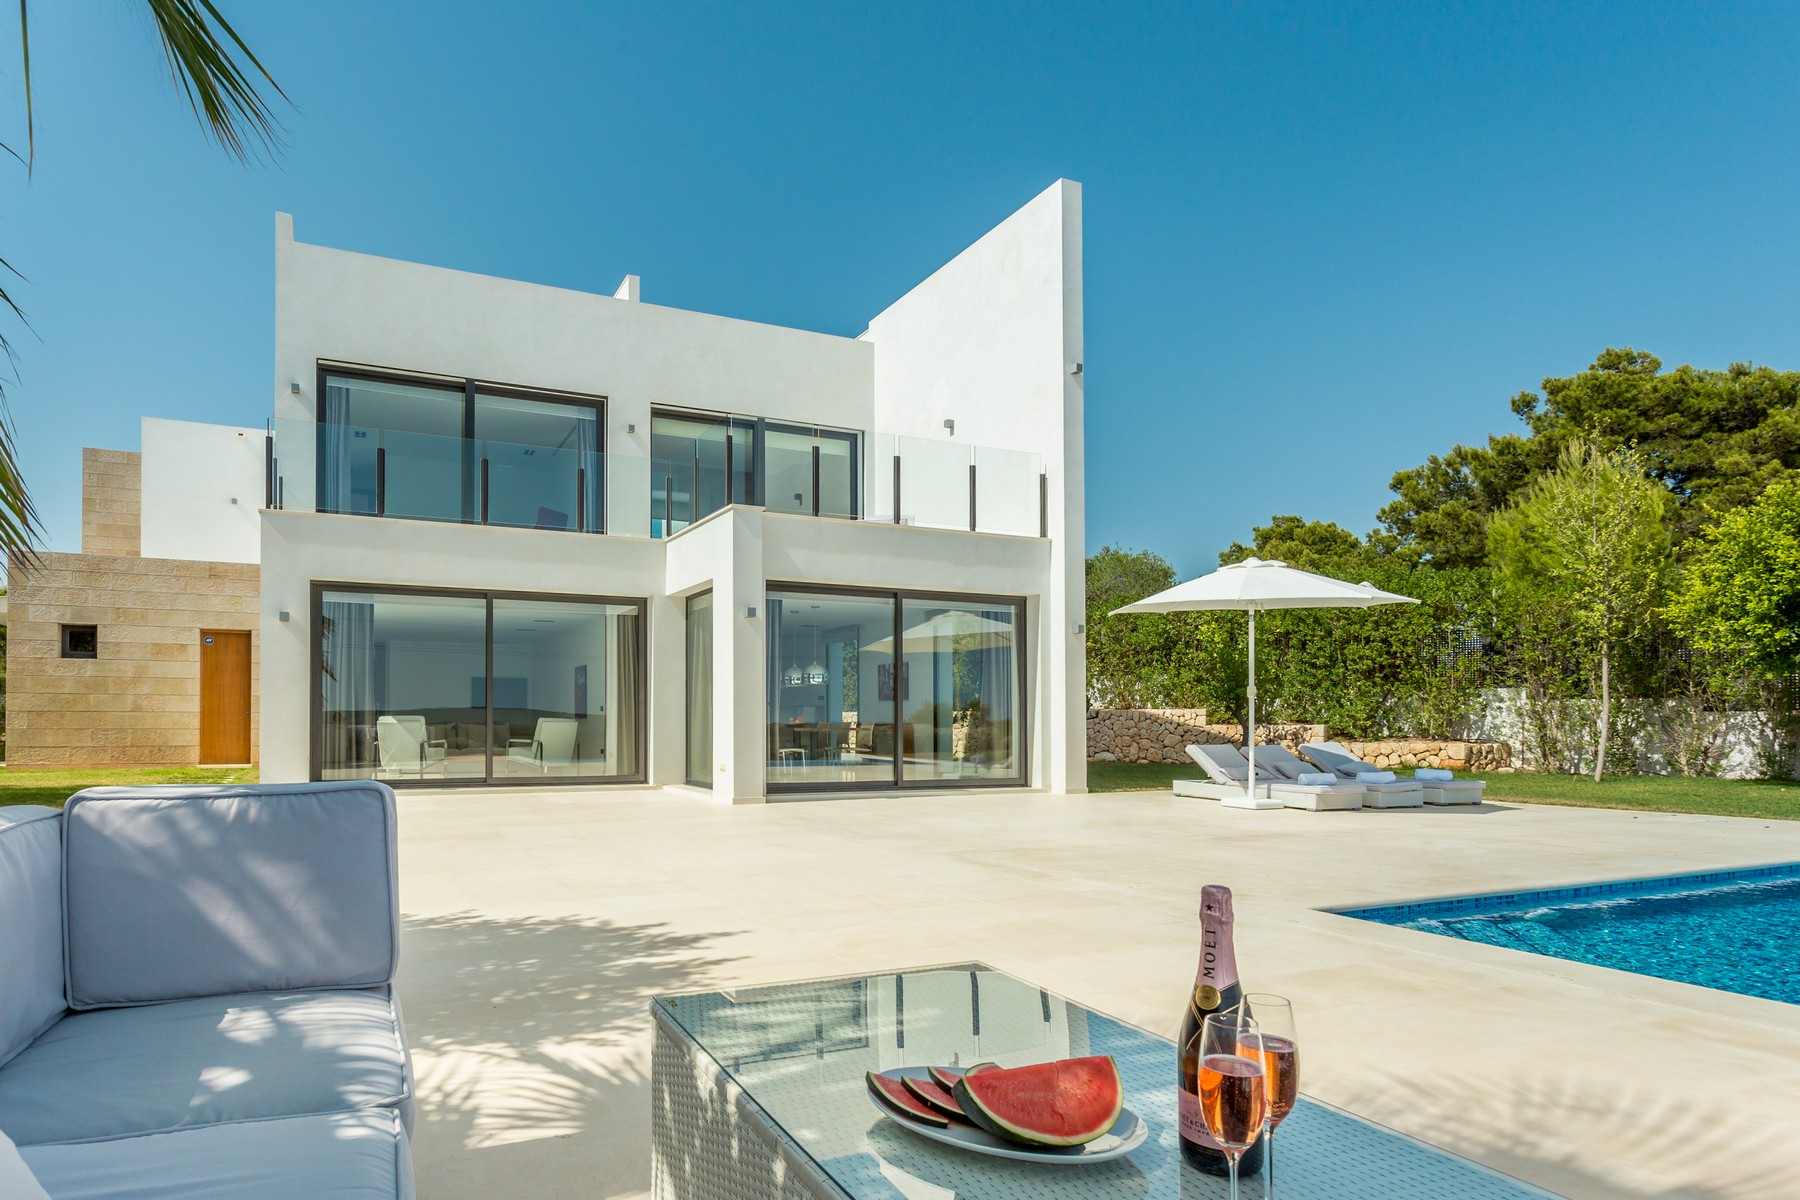 Single Family Home for Sale at Modern villa with panoramic views Carrer Guillem de Montcada Santa Ponsa, Mallorca, 07180 Spain